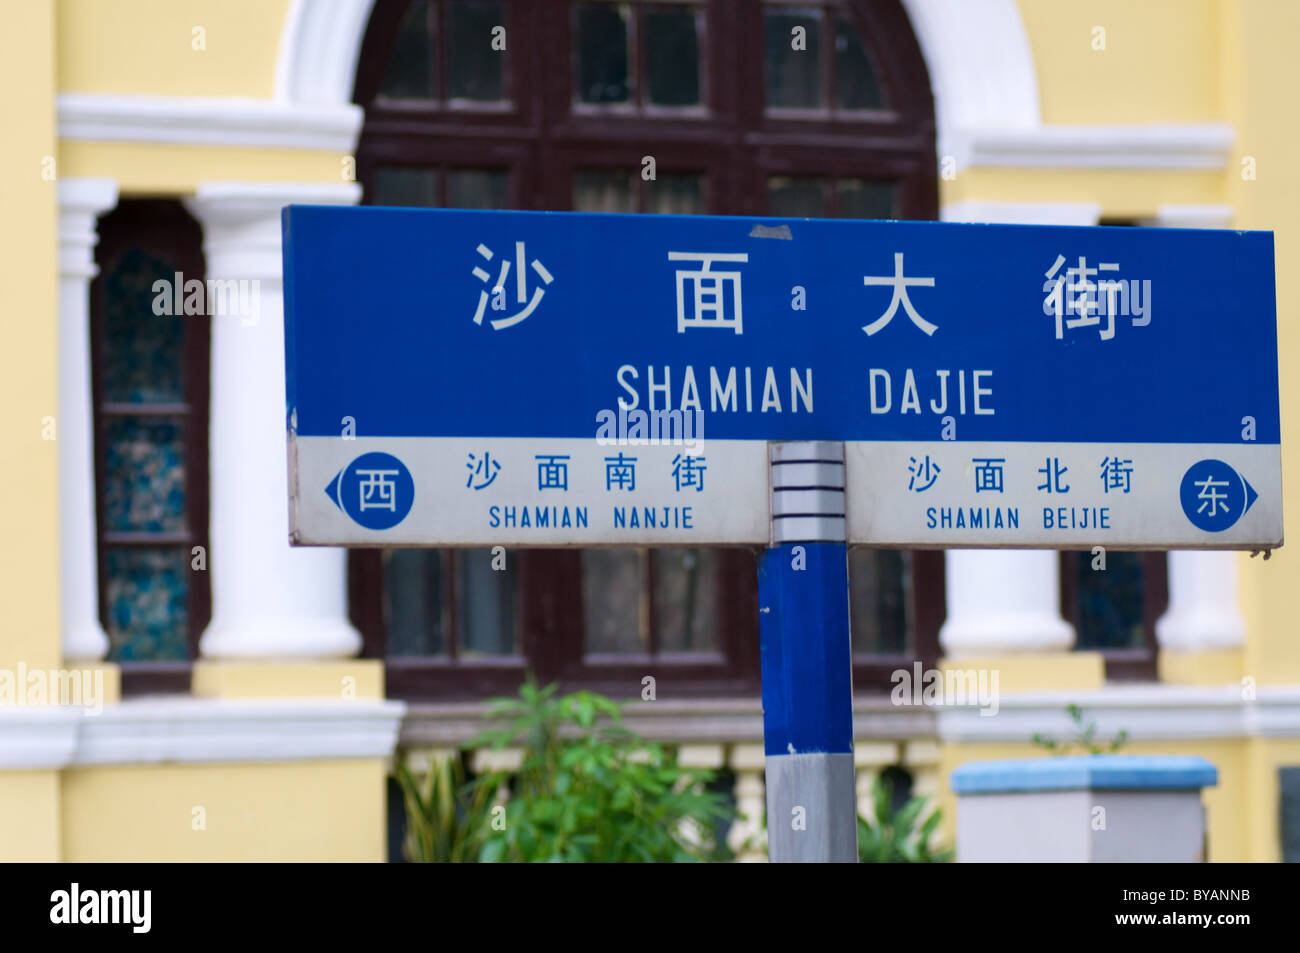 Street sign on Shamian Island in Guangzhou - Stock Image